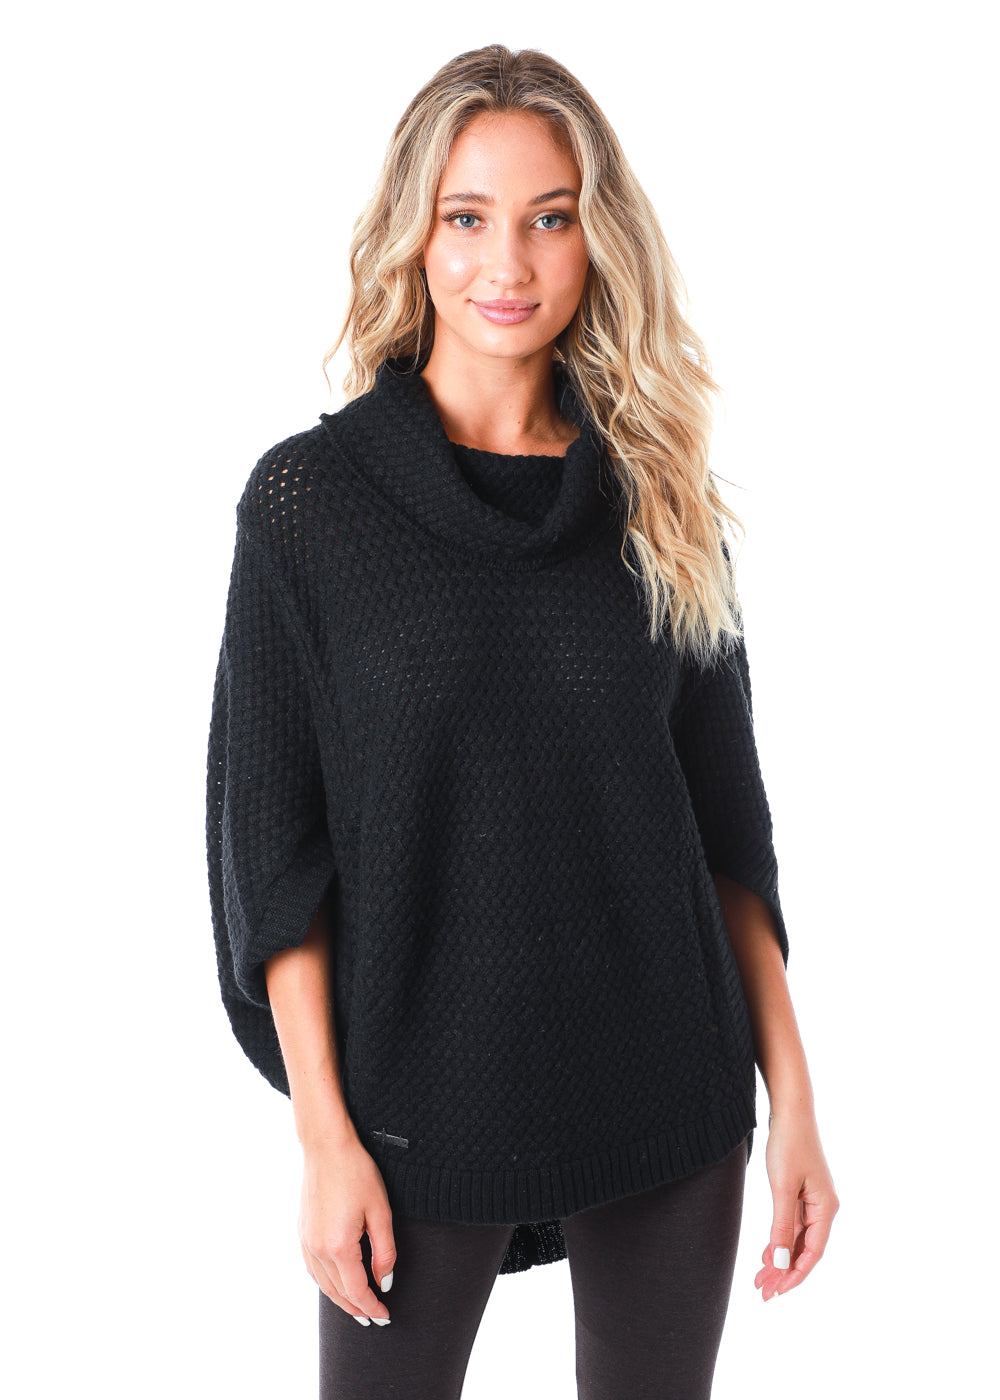 Oversized knit poncho with large mock neck and oversized 3/4 length sleeves